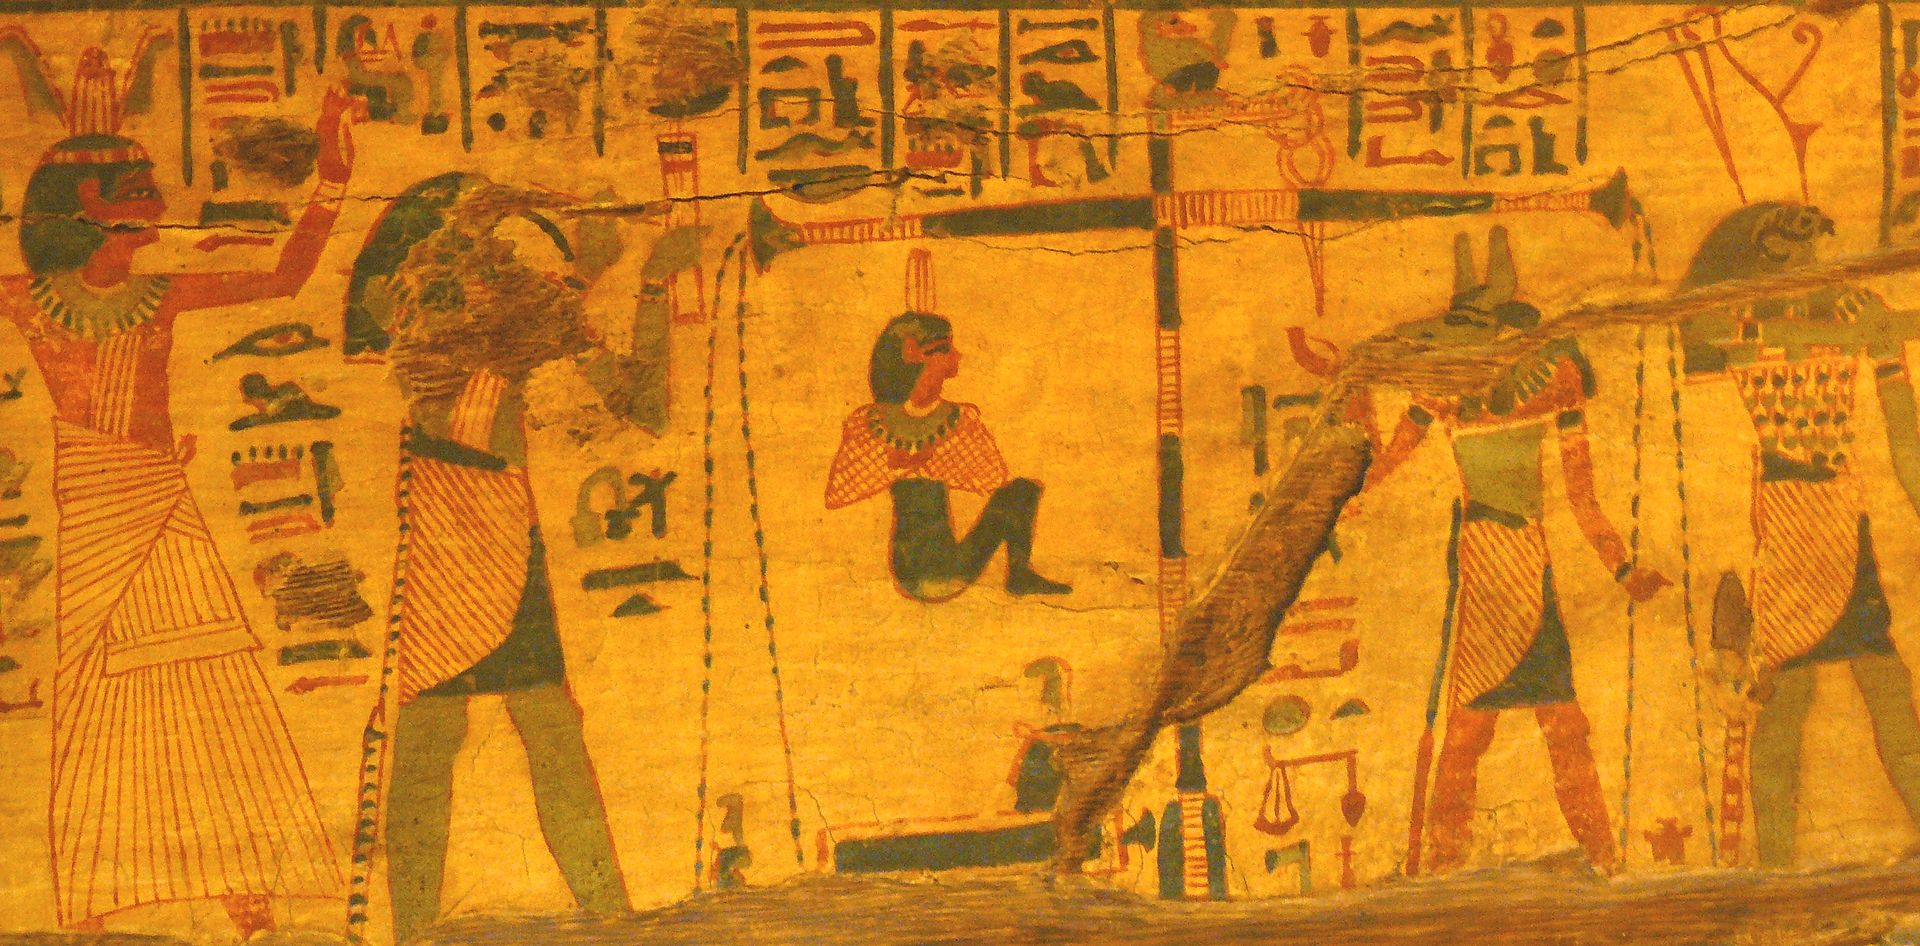 Under Tawaret's Protection: Childbirth in Ancient Egypt